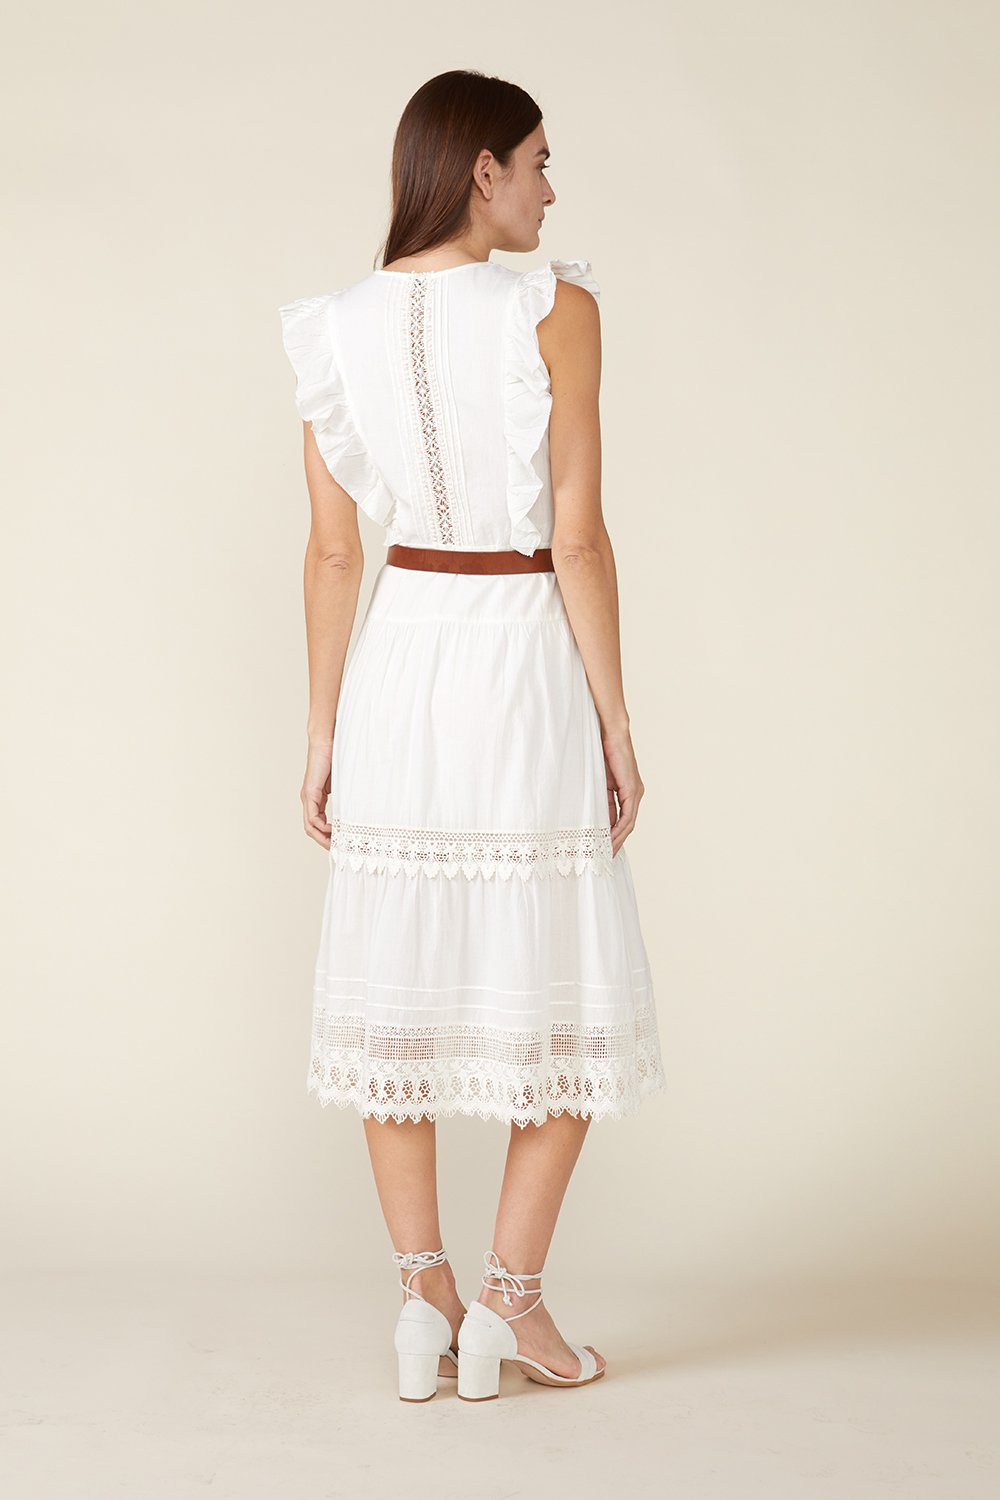 LUX DRESS, IVORY by St. Roche - 3